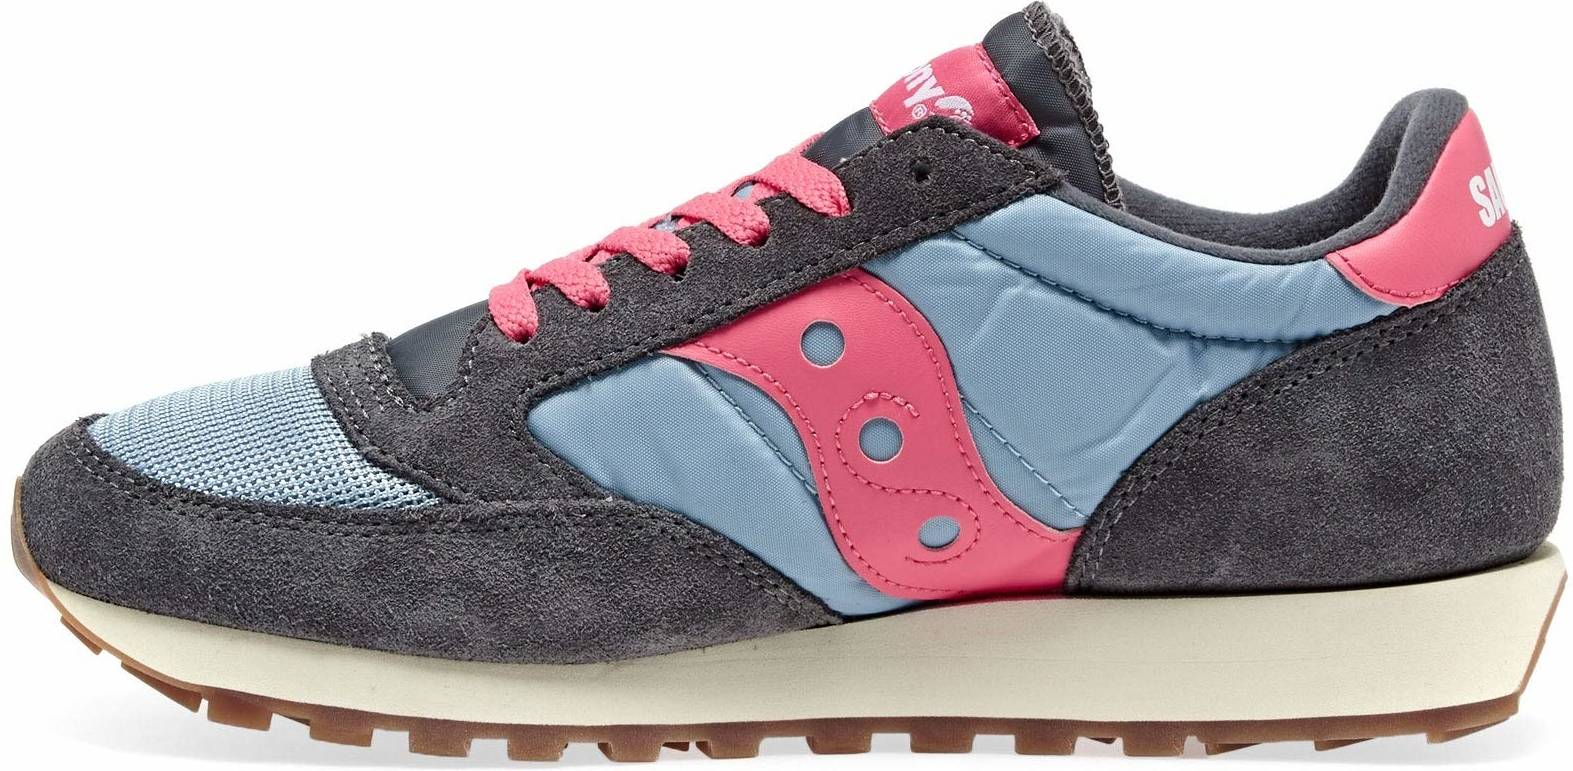 Save 40% on Saucony Jazz Sneakers (7